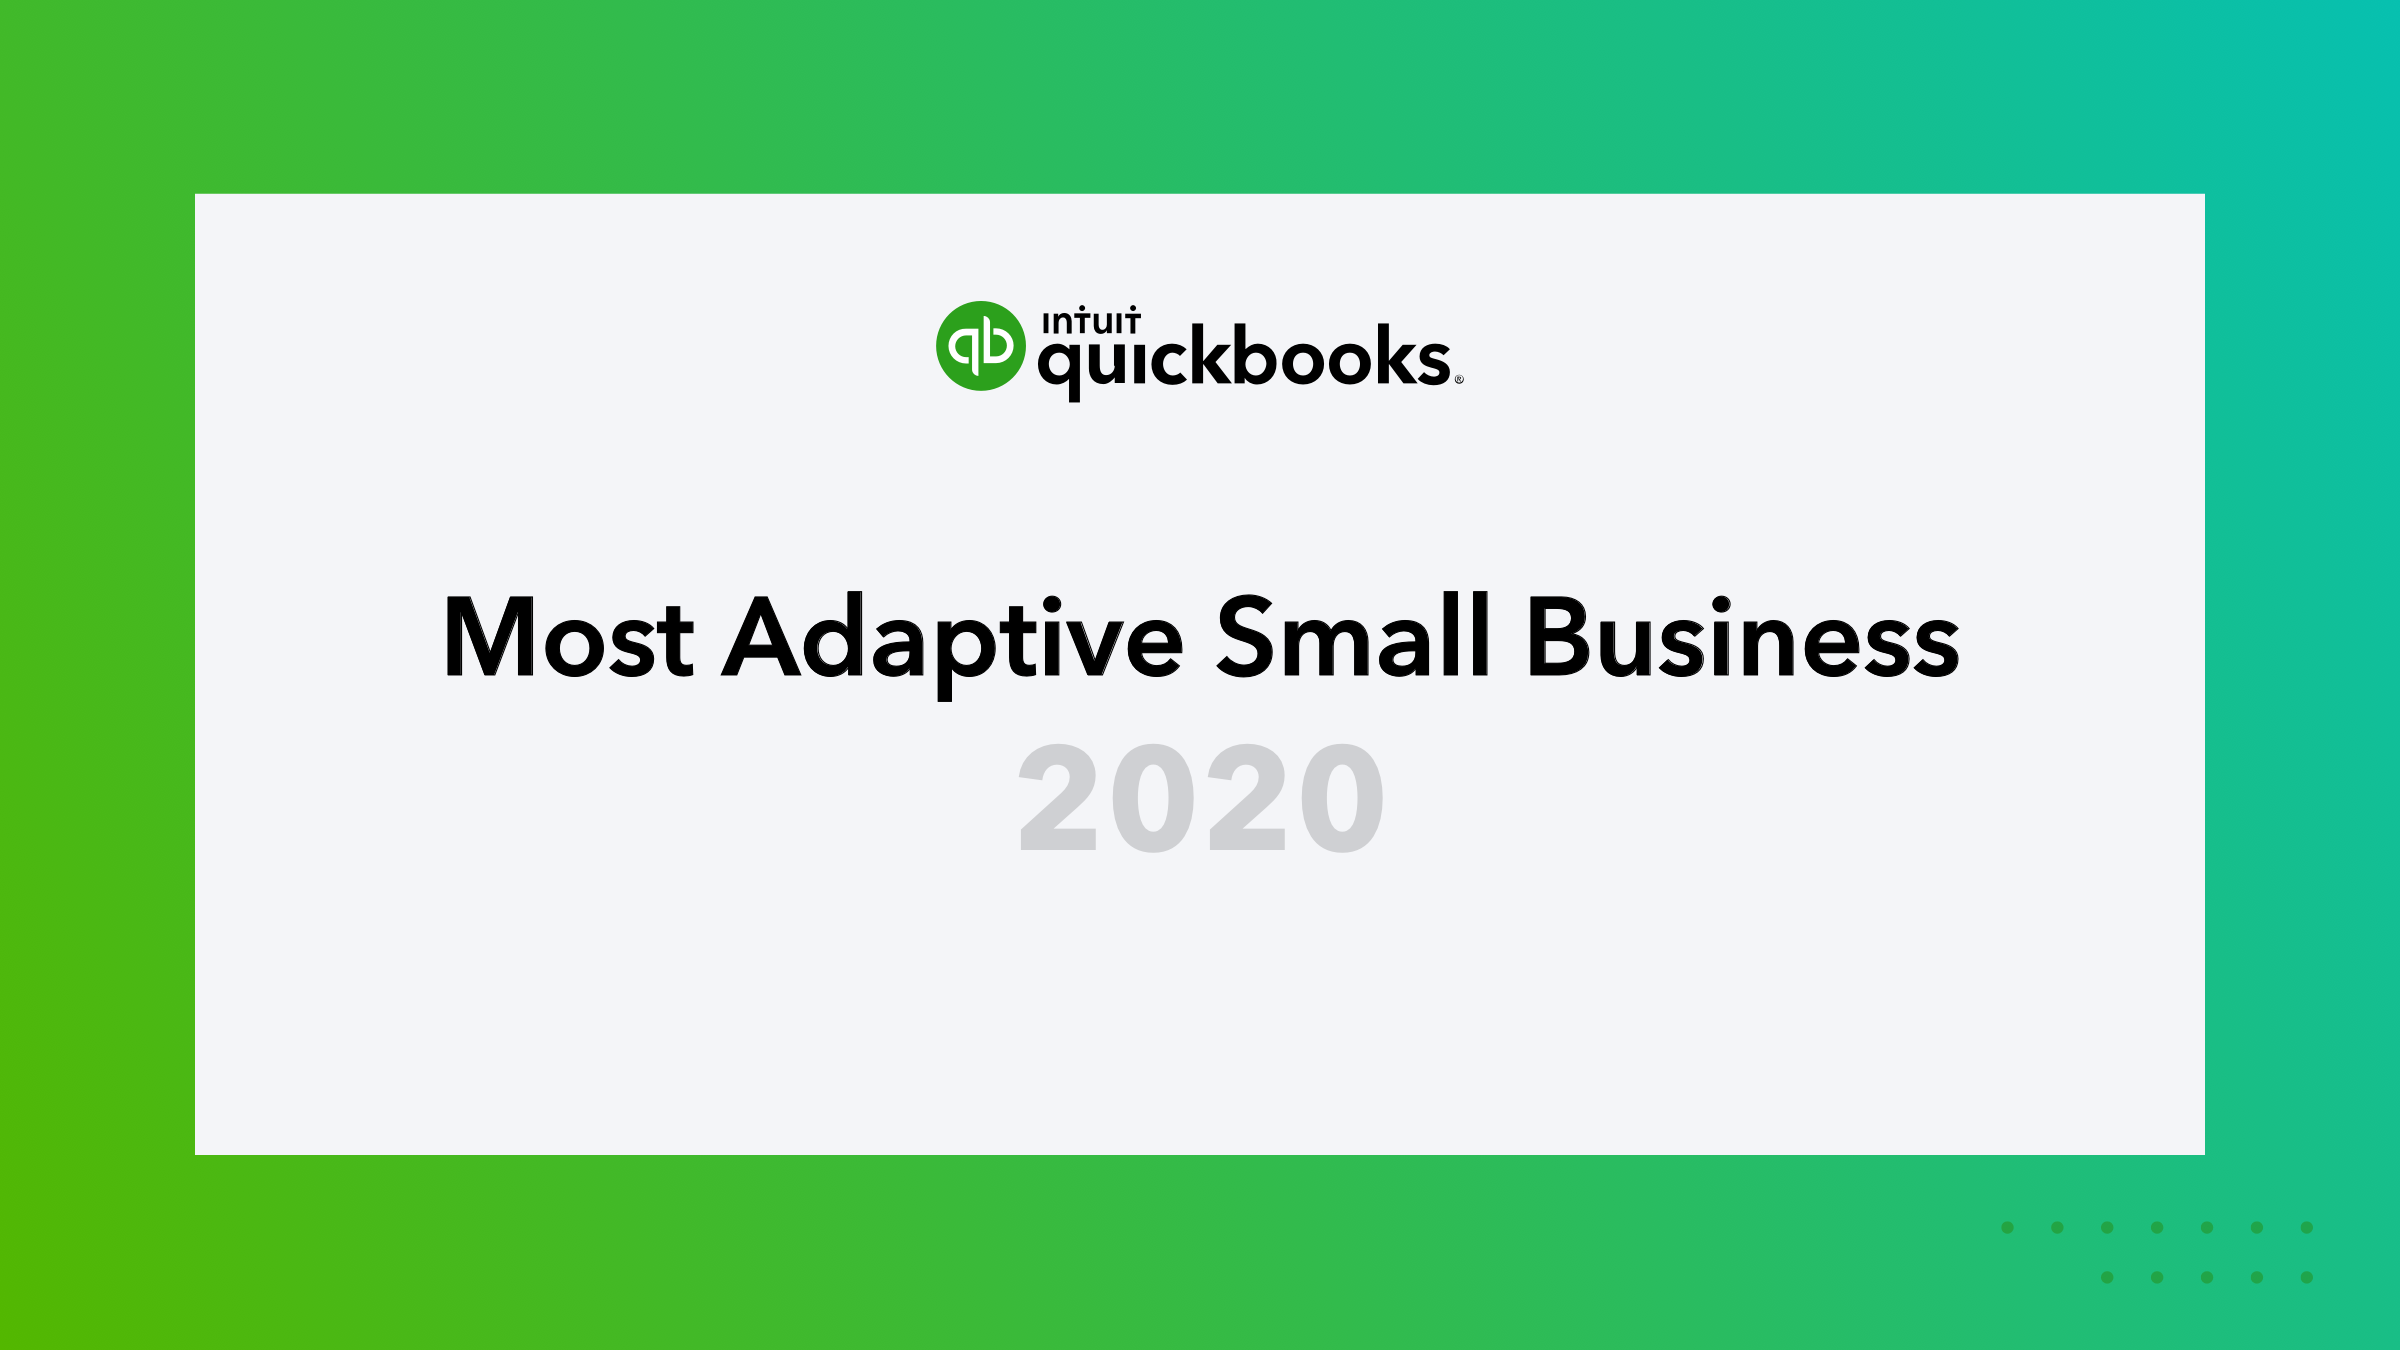 Most Adaptive SMB Social FB and Twitter 1200x675 x2 (1)